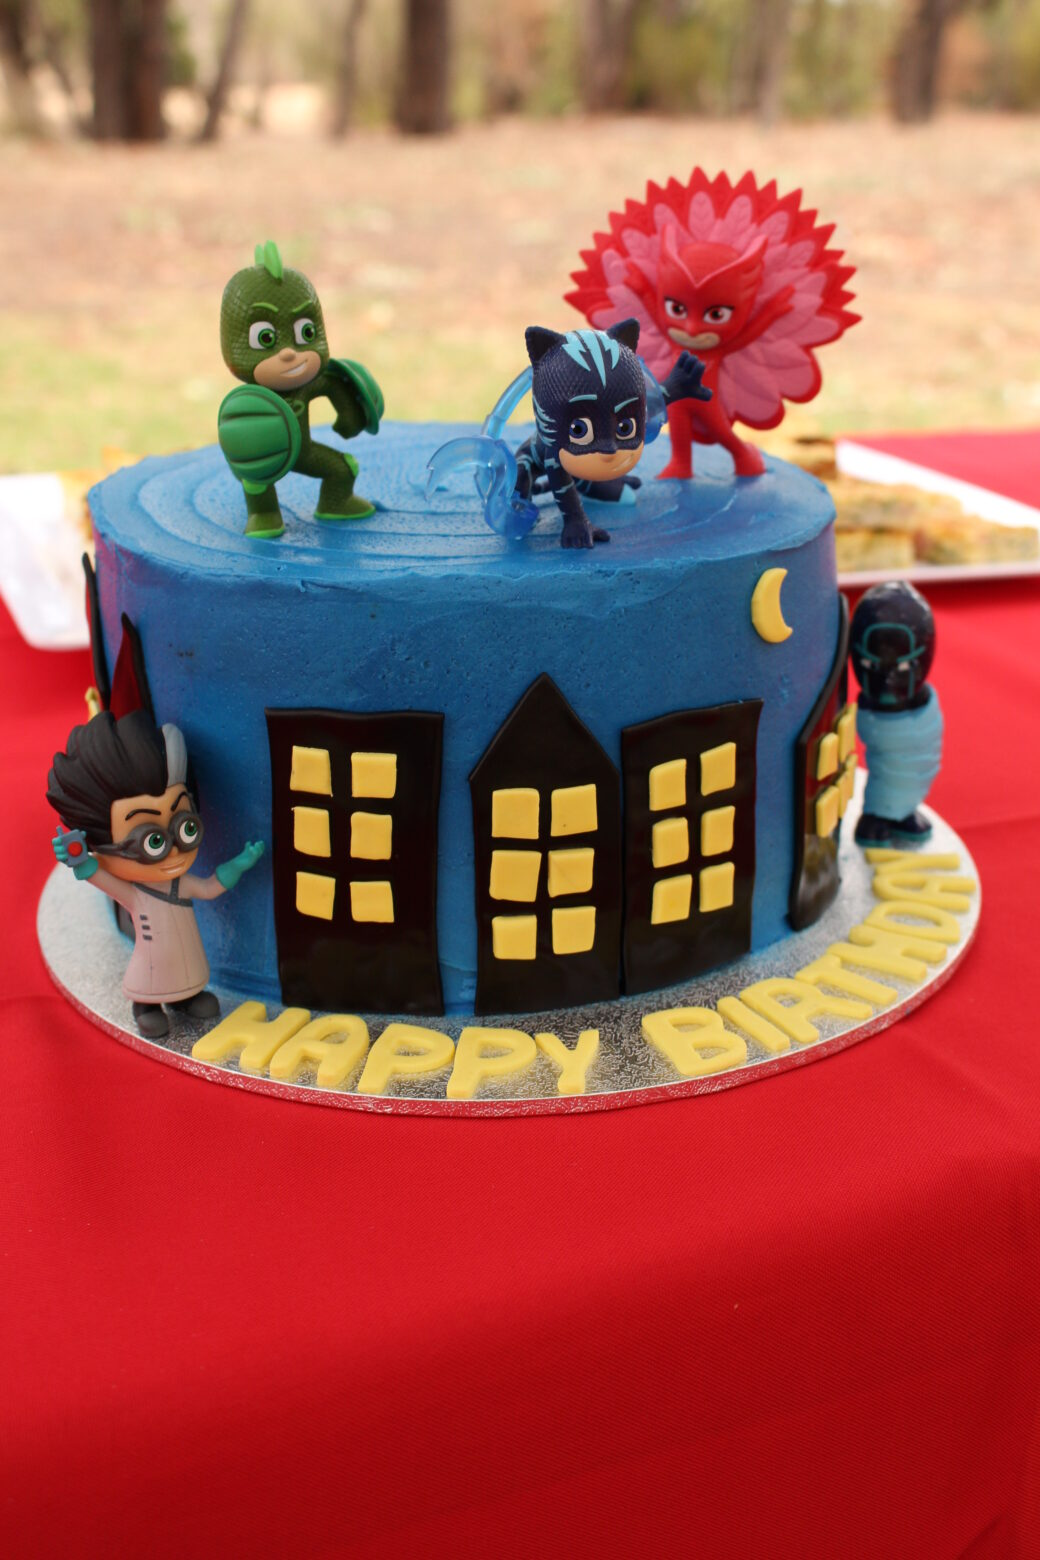 Making Your Own Kids Birthday Cake Perth Hills WA Where Can I Hire A Tin